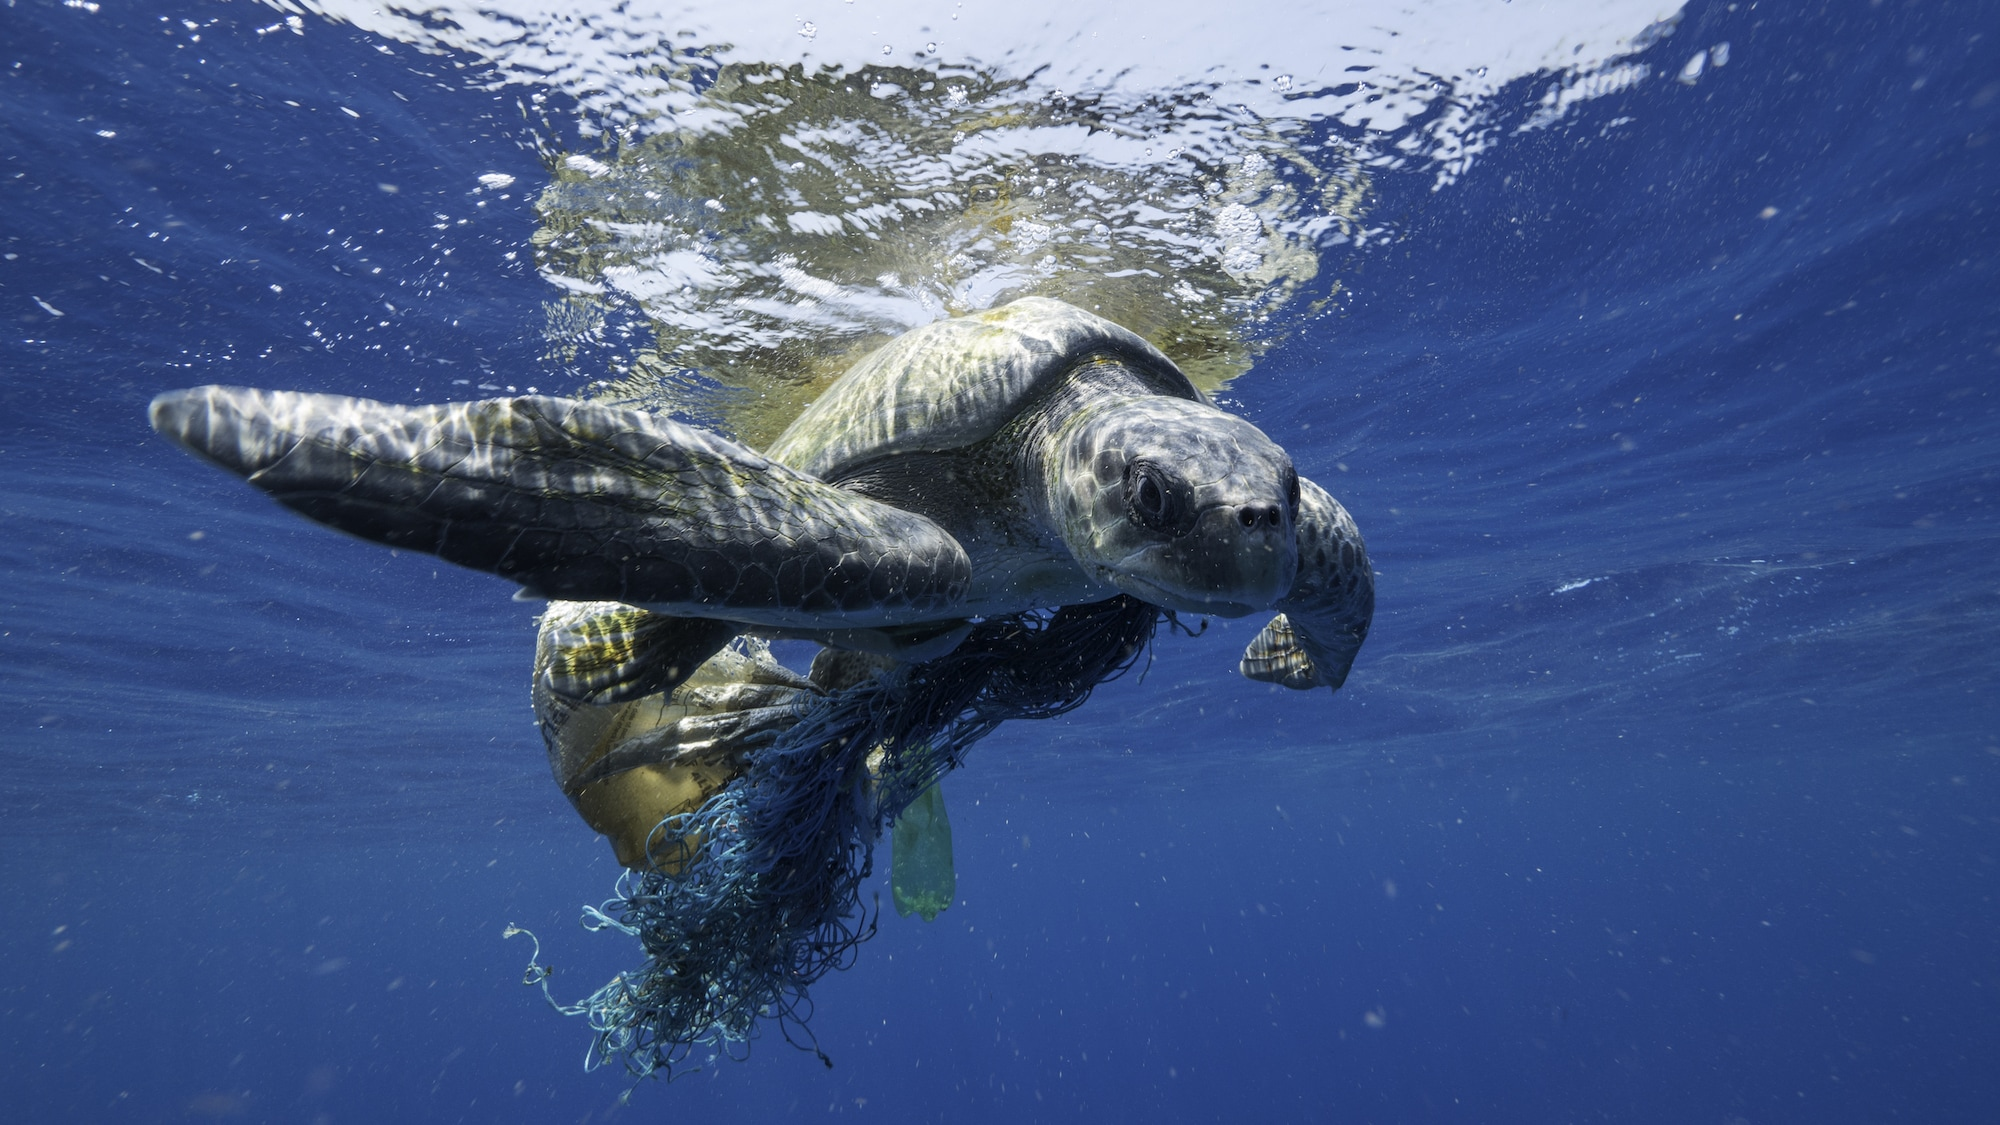 Fishing gear is the most common form of plastic pollution in the ocean, and it is often lethal to marine wildlife, including whales. The National Geographic team saved this sea turtle while on assignment in the Indian Ocean. (National Geographic for Disney+/Hayes Baxley)